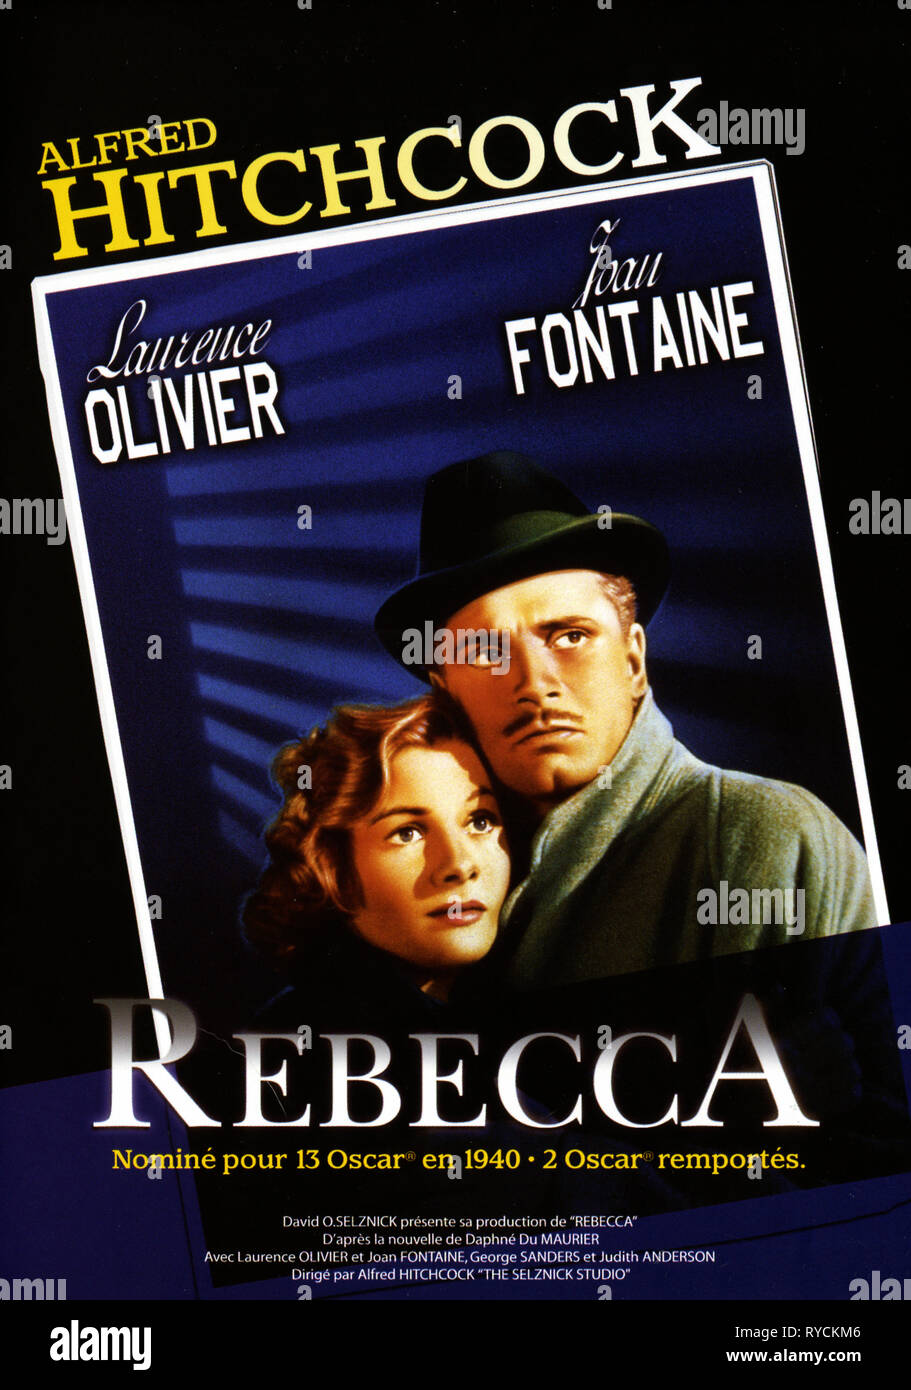 FRENCH MOVIE POSTER, REBECCA, 1940 - Stock Image